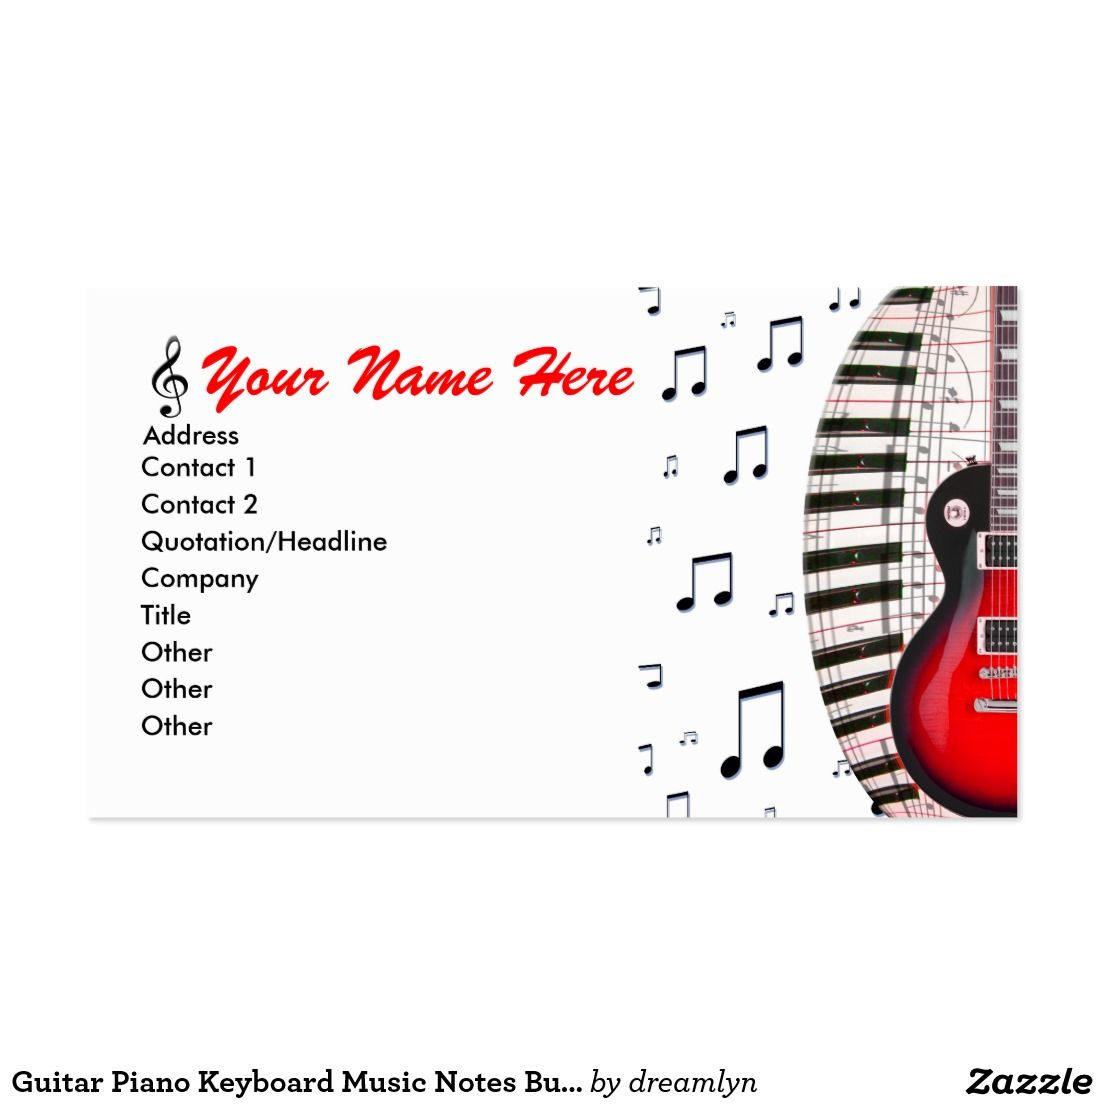 Guitar piano keyboard music notes business card music notes guitar piano keyboard music notes business card reheart Images